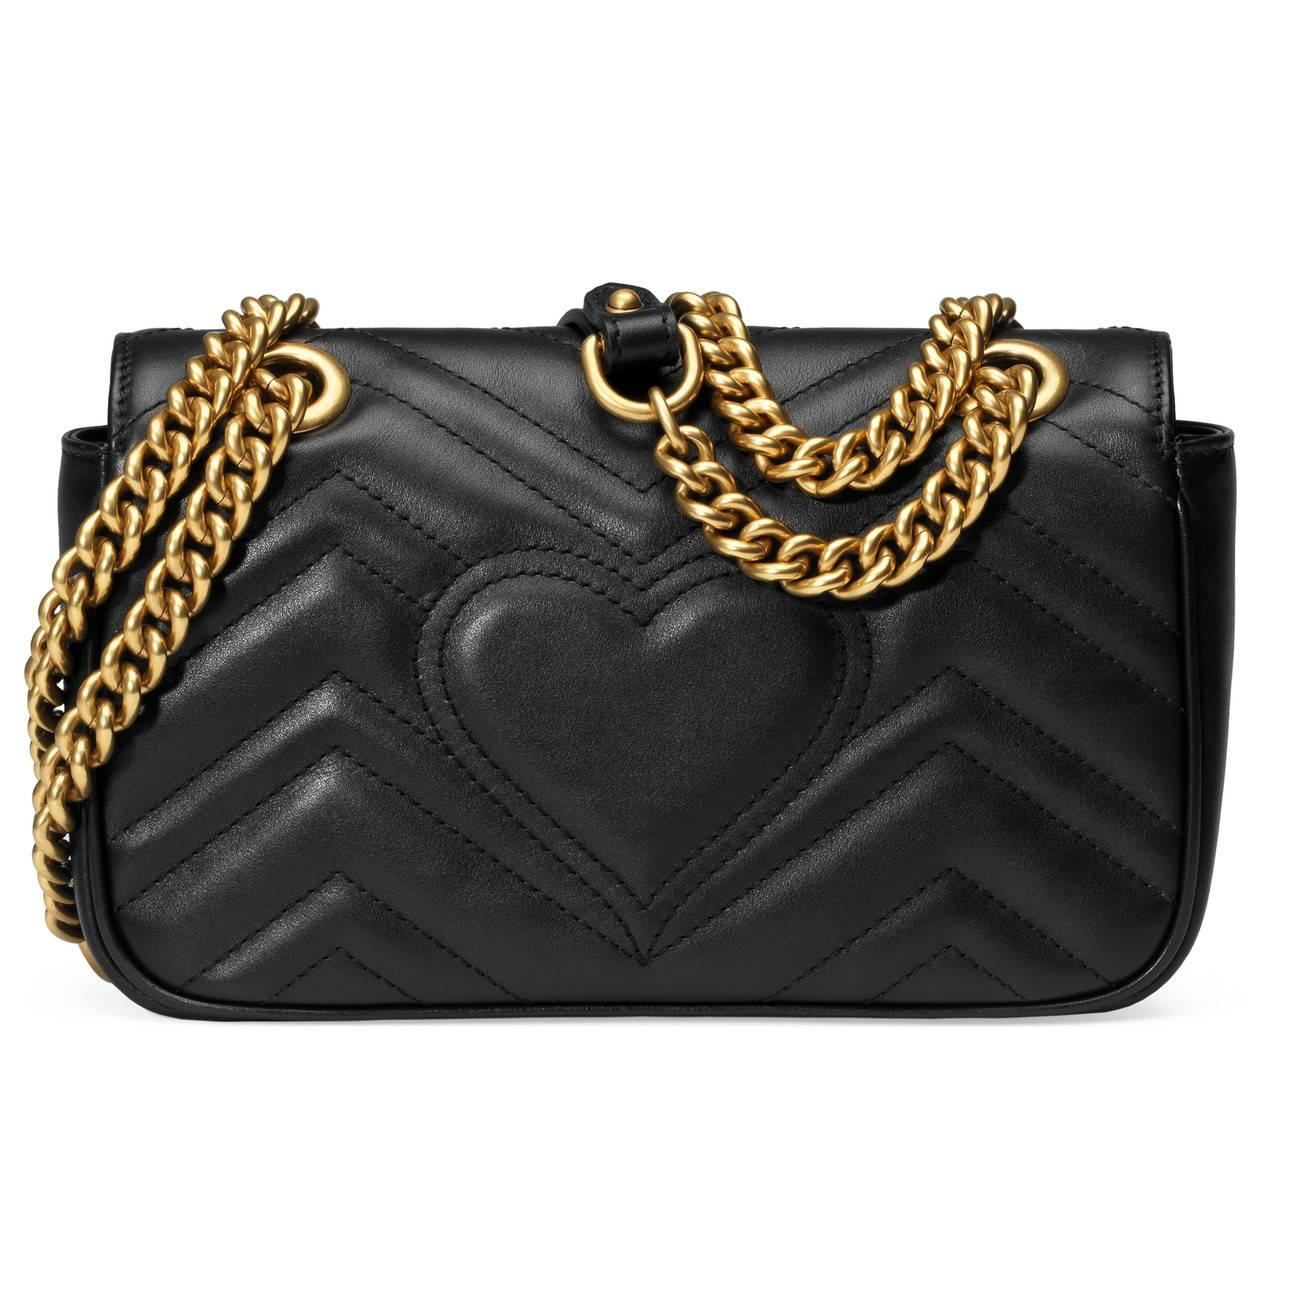 a4a0d041c6b6 Gucci - Black Gg Marmont Matelassã© Mini Bag - Lyst. View fullscreen